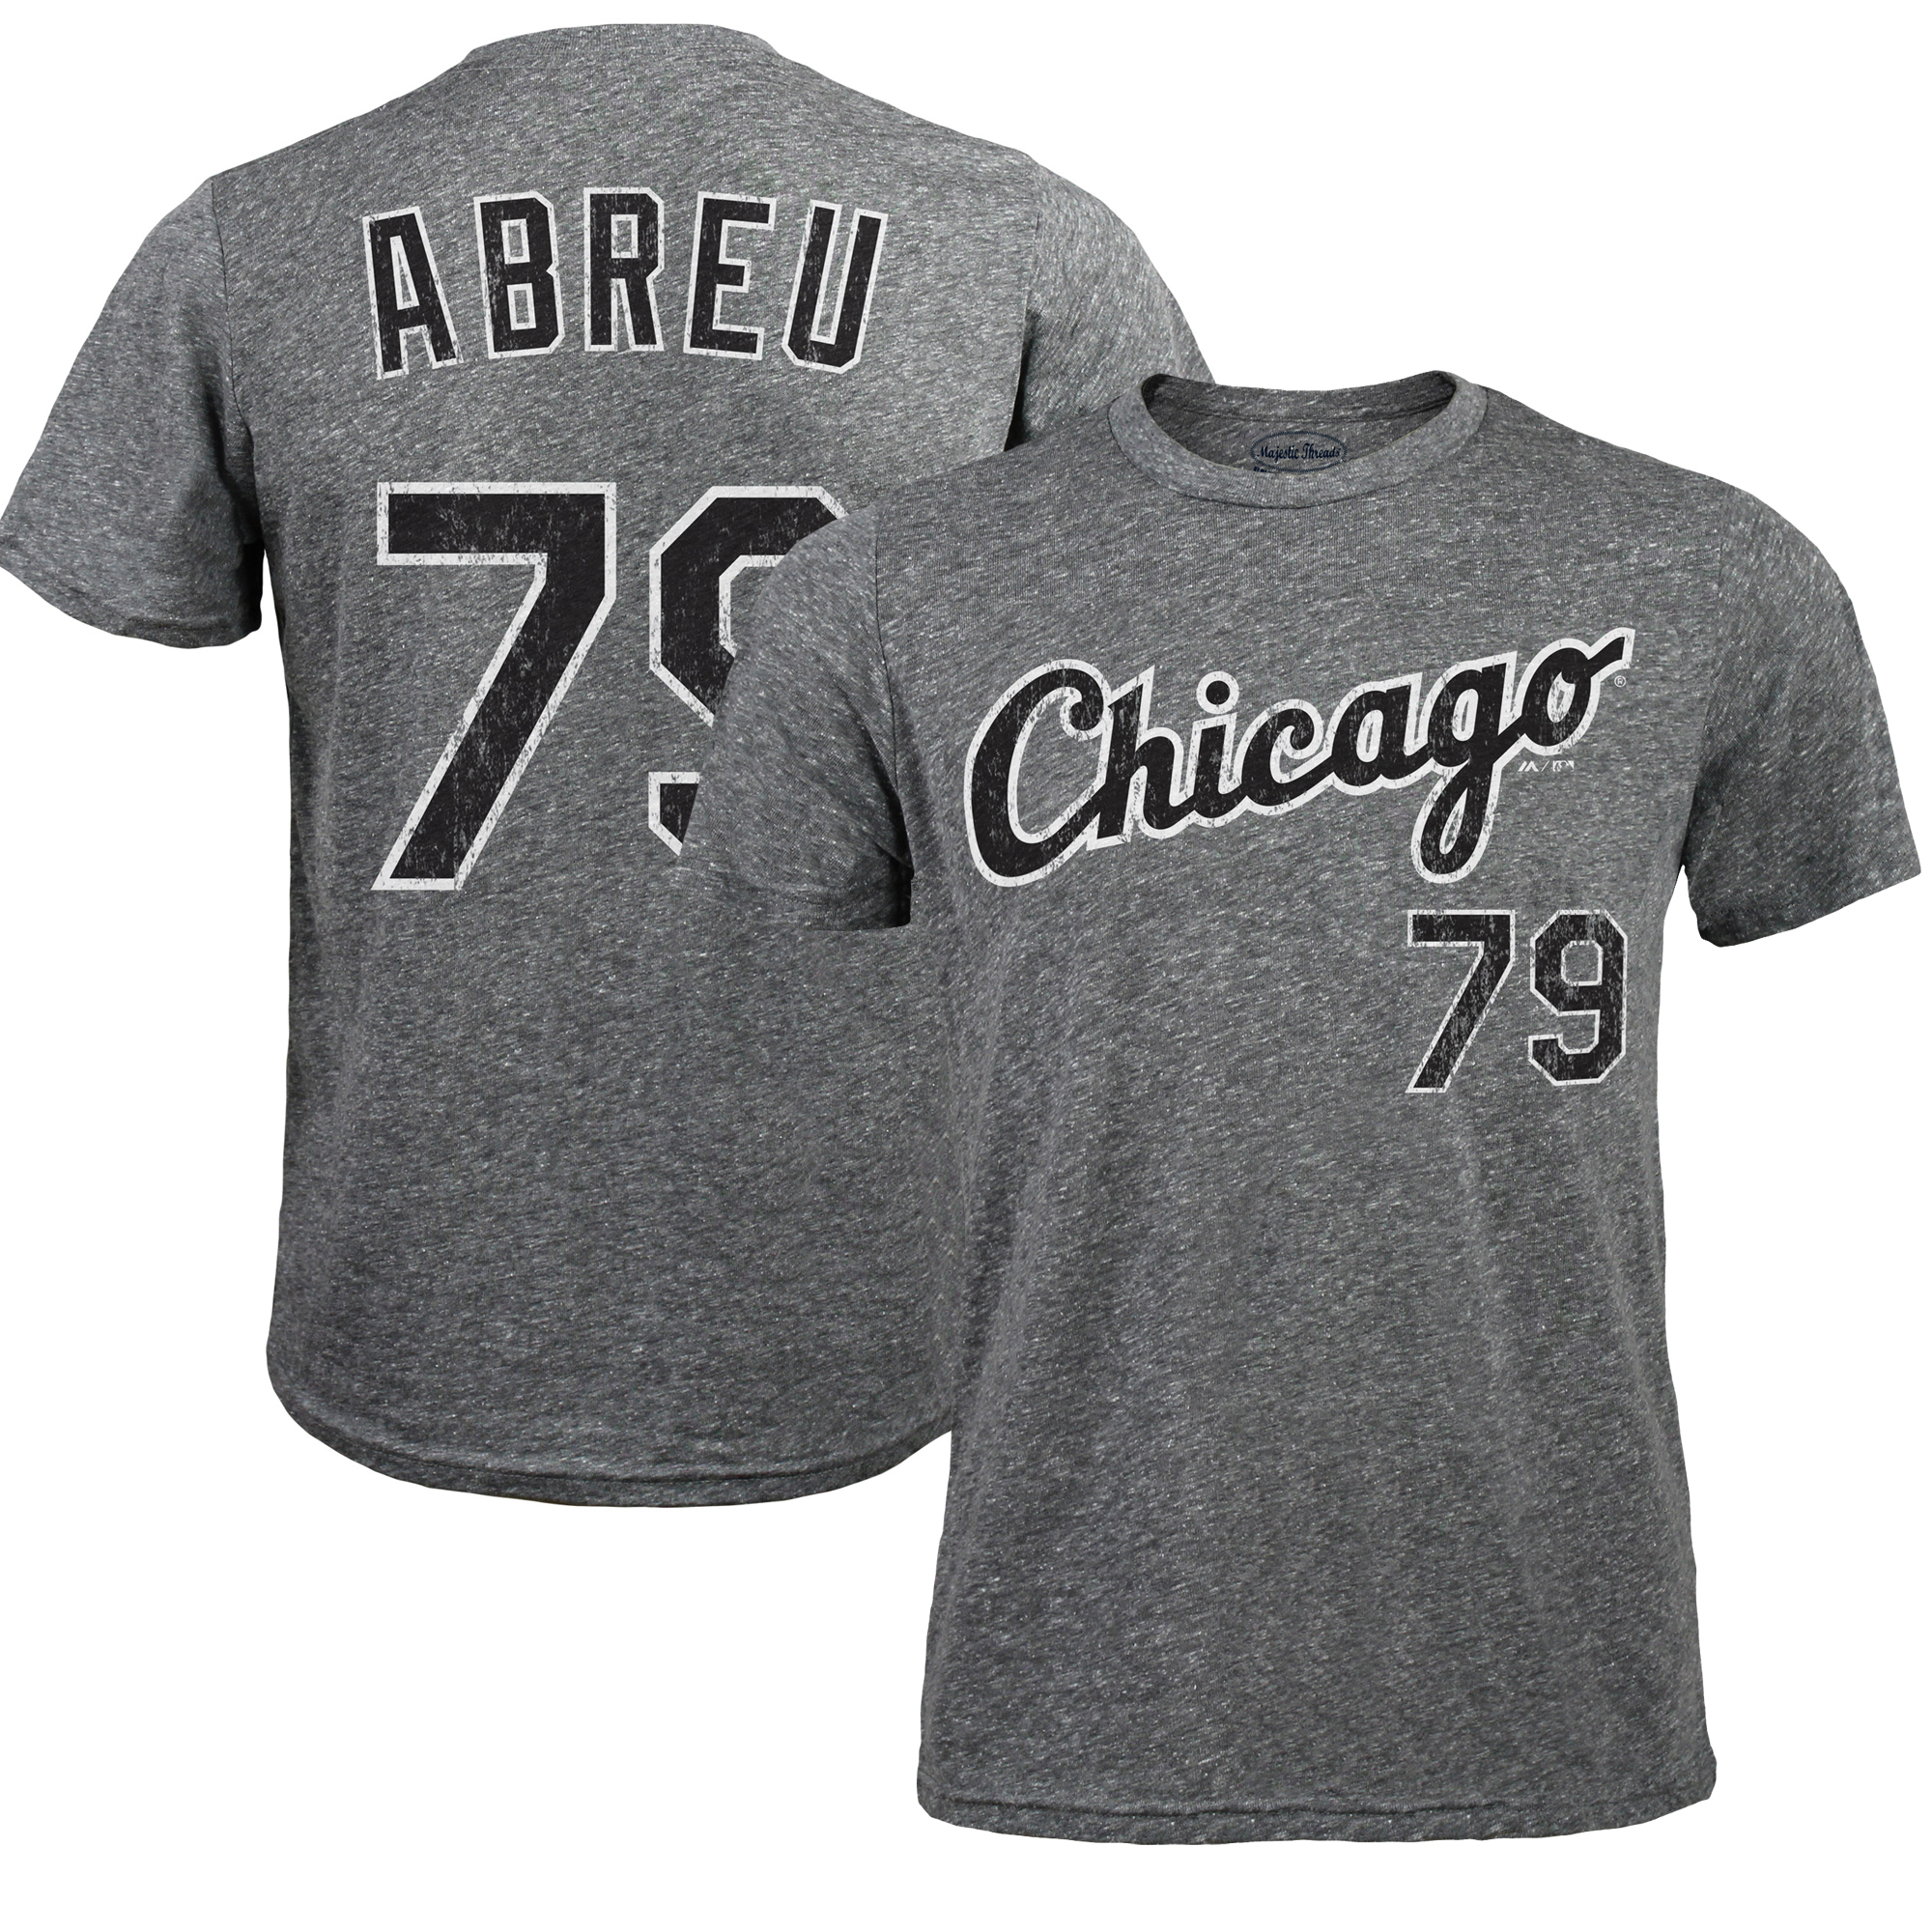 Jose Abreu Chicago White Sox Majestic Threads Premium Tri-Blend Name & Number T-Shirt - Gray